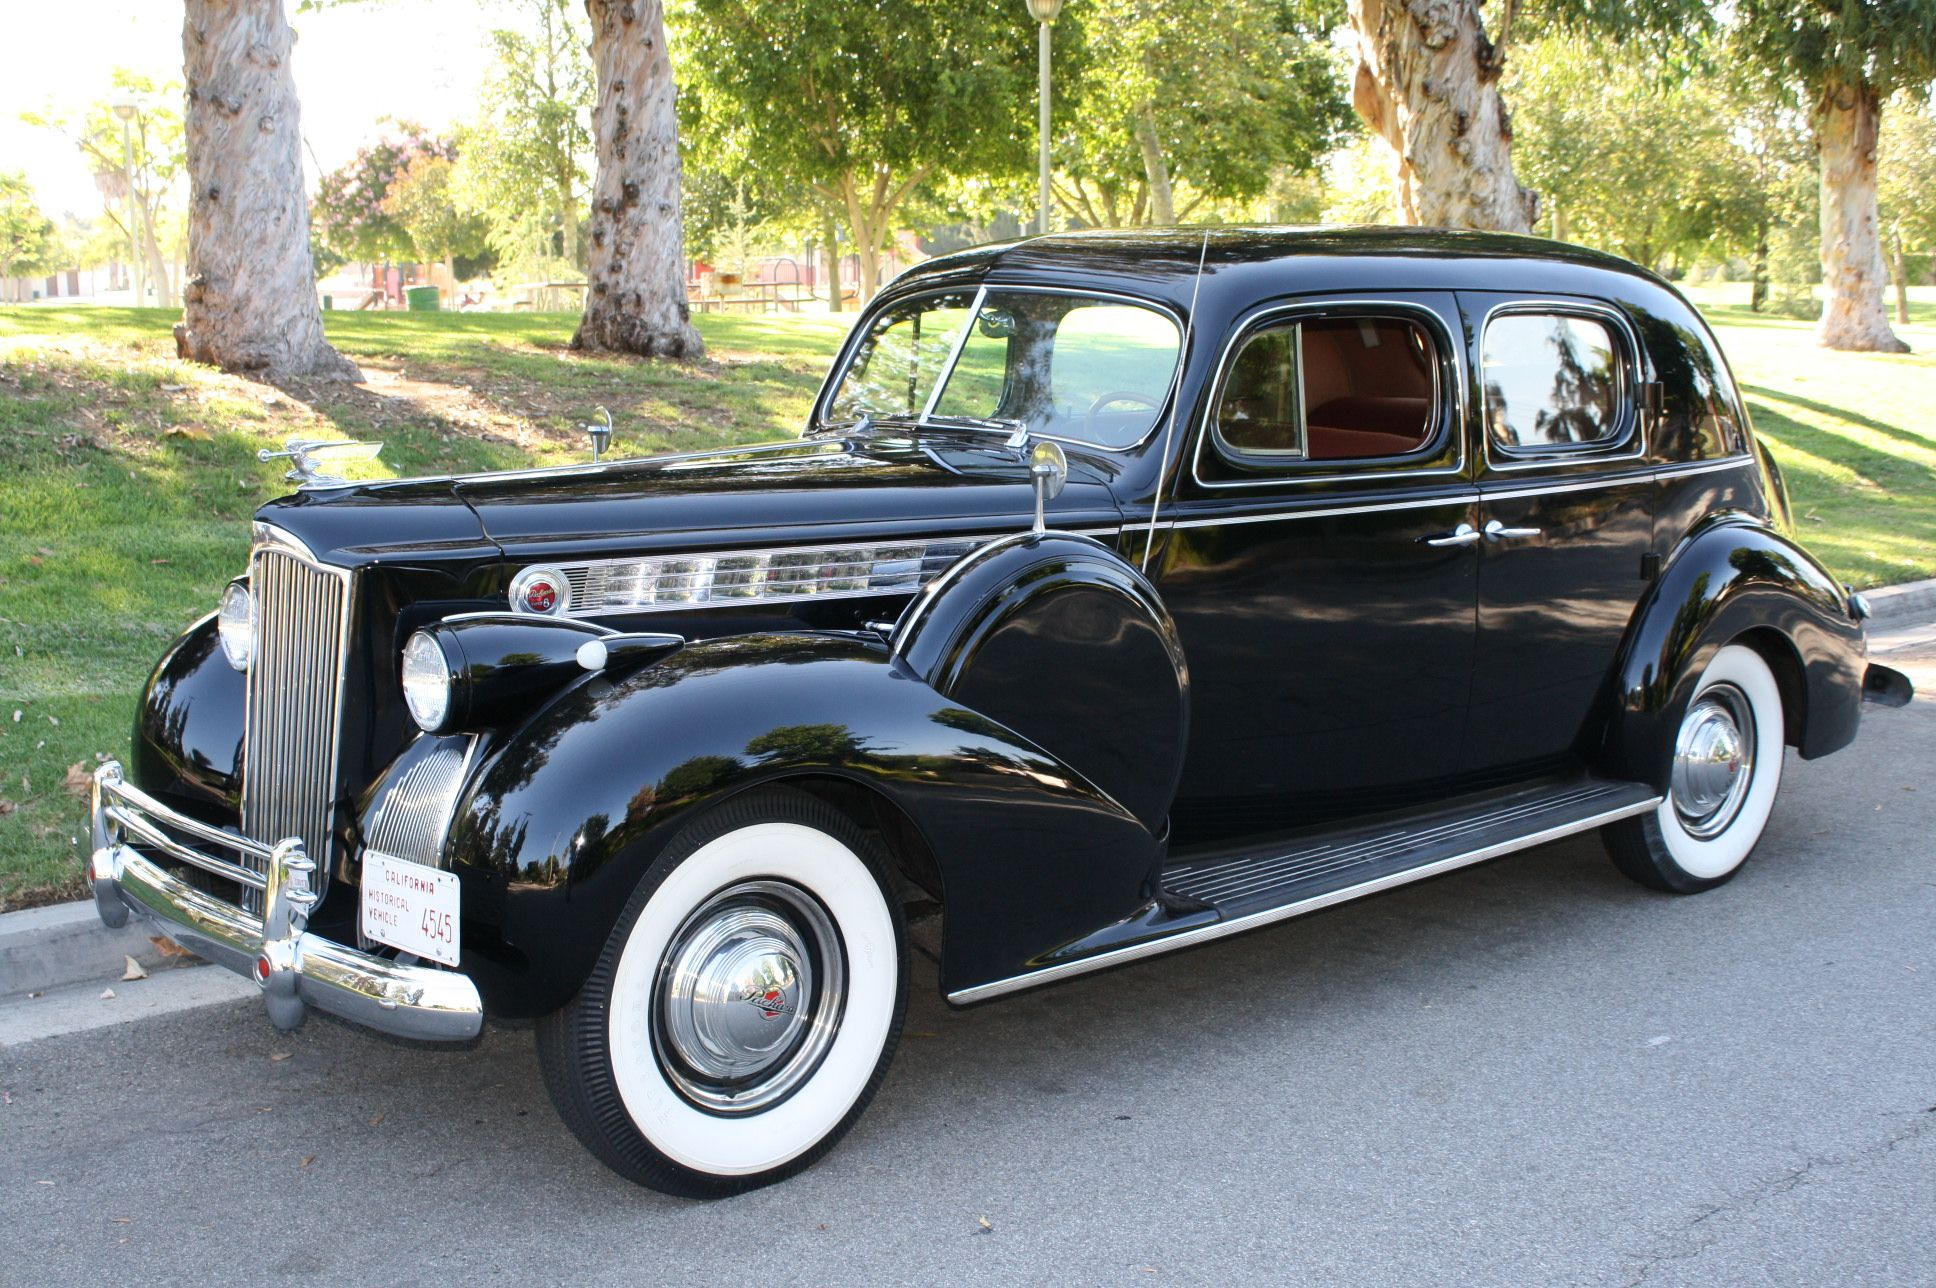 Here is an extremely rare car it's a 1940 Packard 180